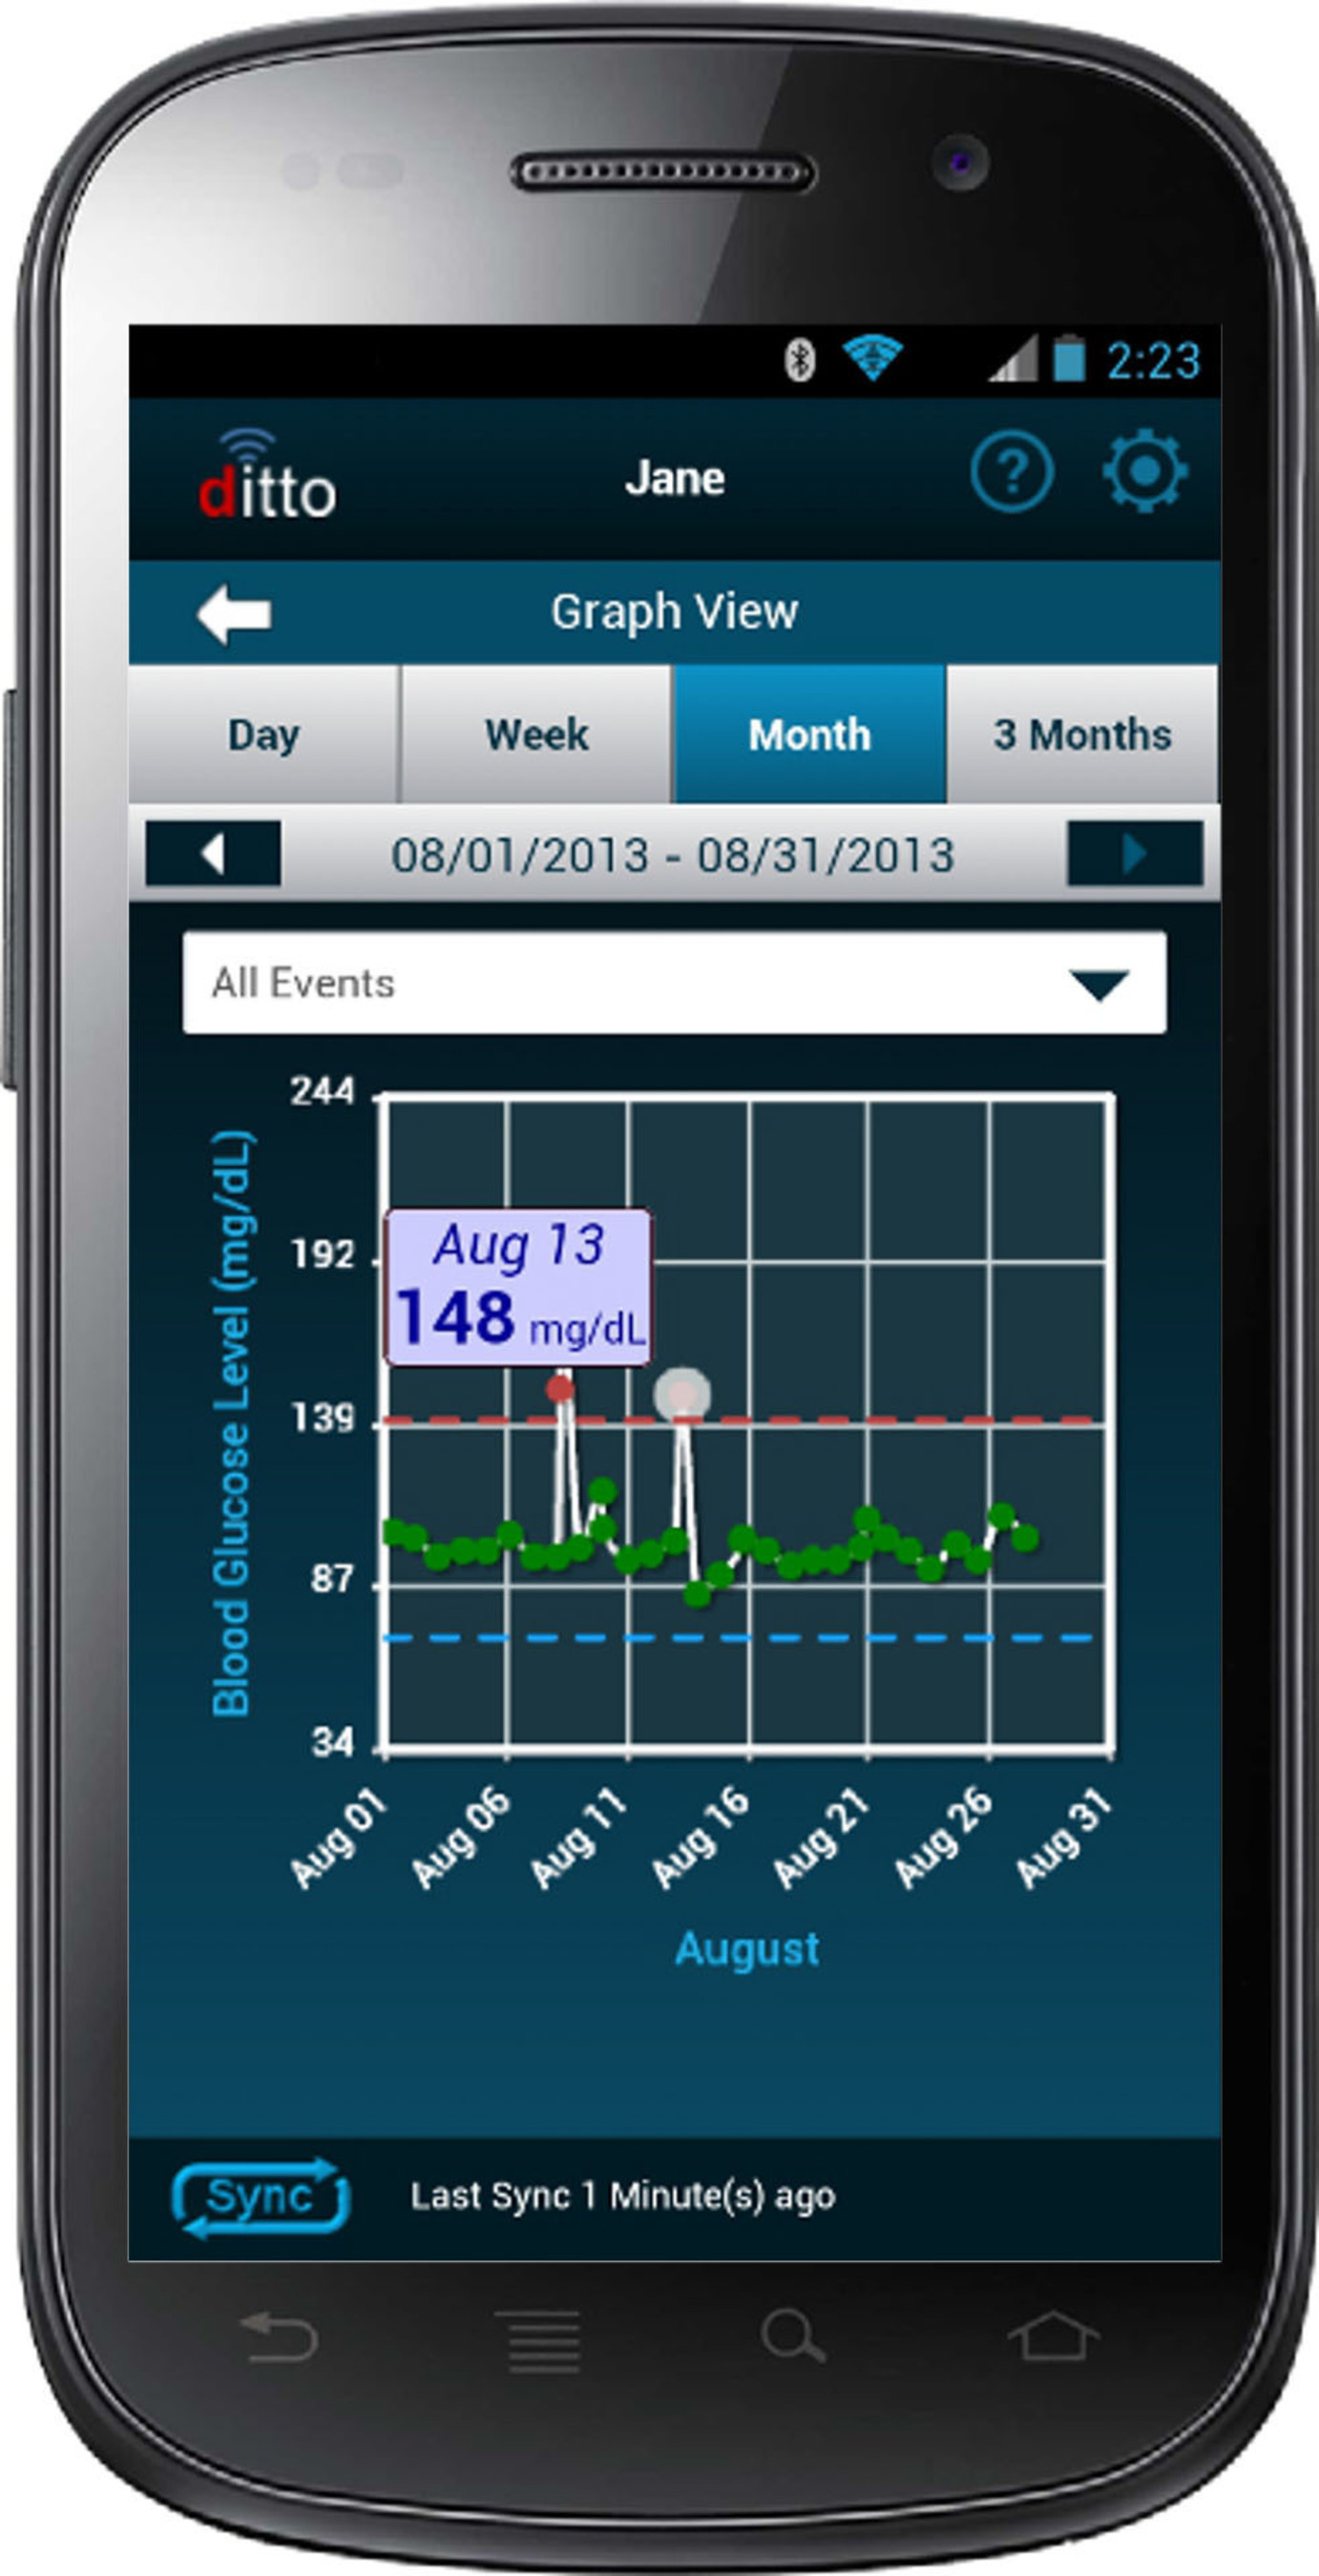 The ditto Glucose Data System from Biomedtrics. (PRNewsFoto/Biomedtrics, Inc.) (PRNewsFoto/BIOMEDTRICS, INC.)